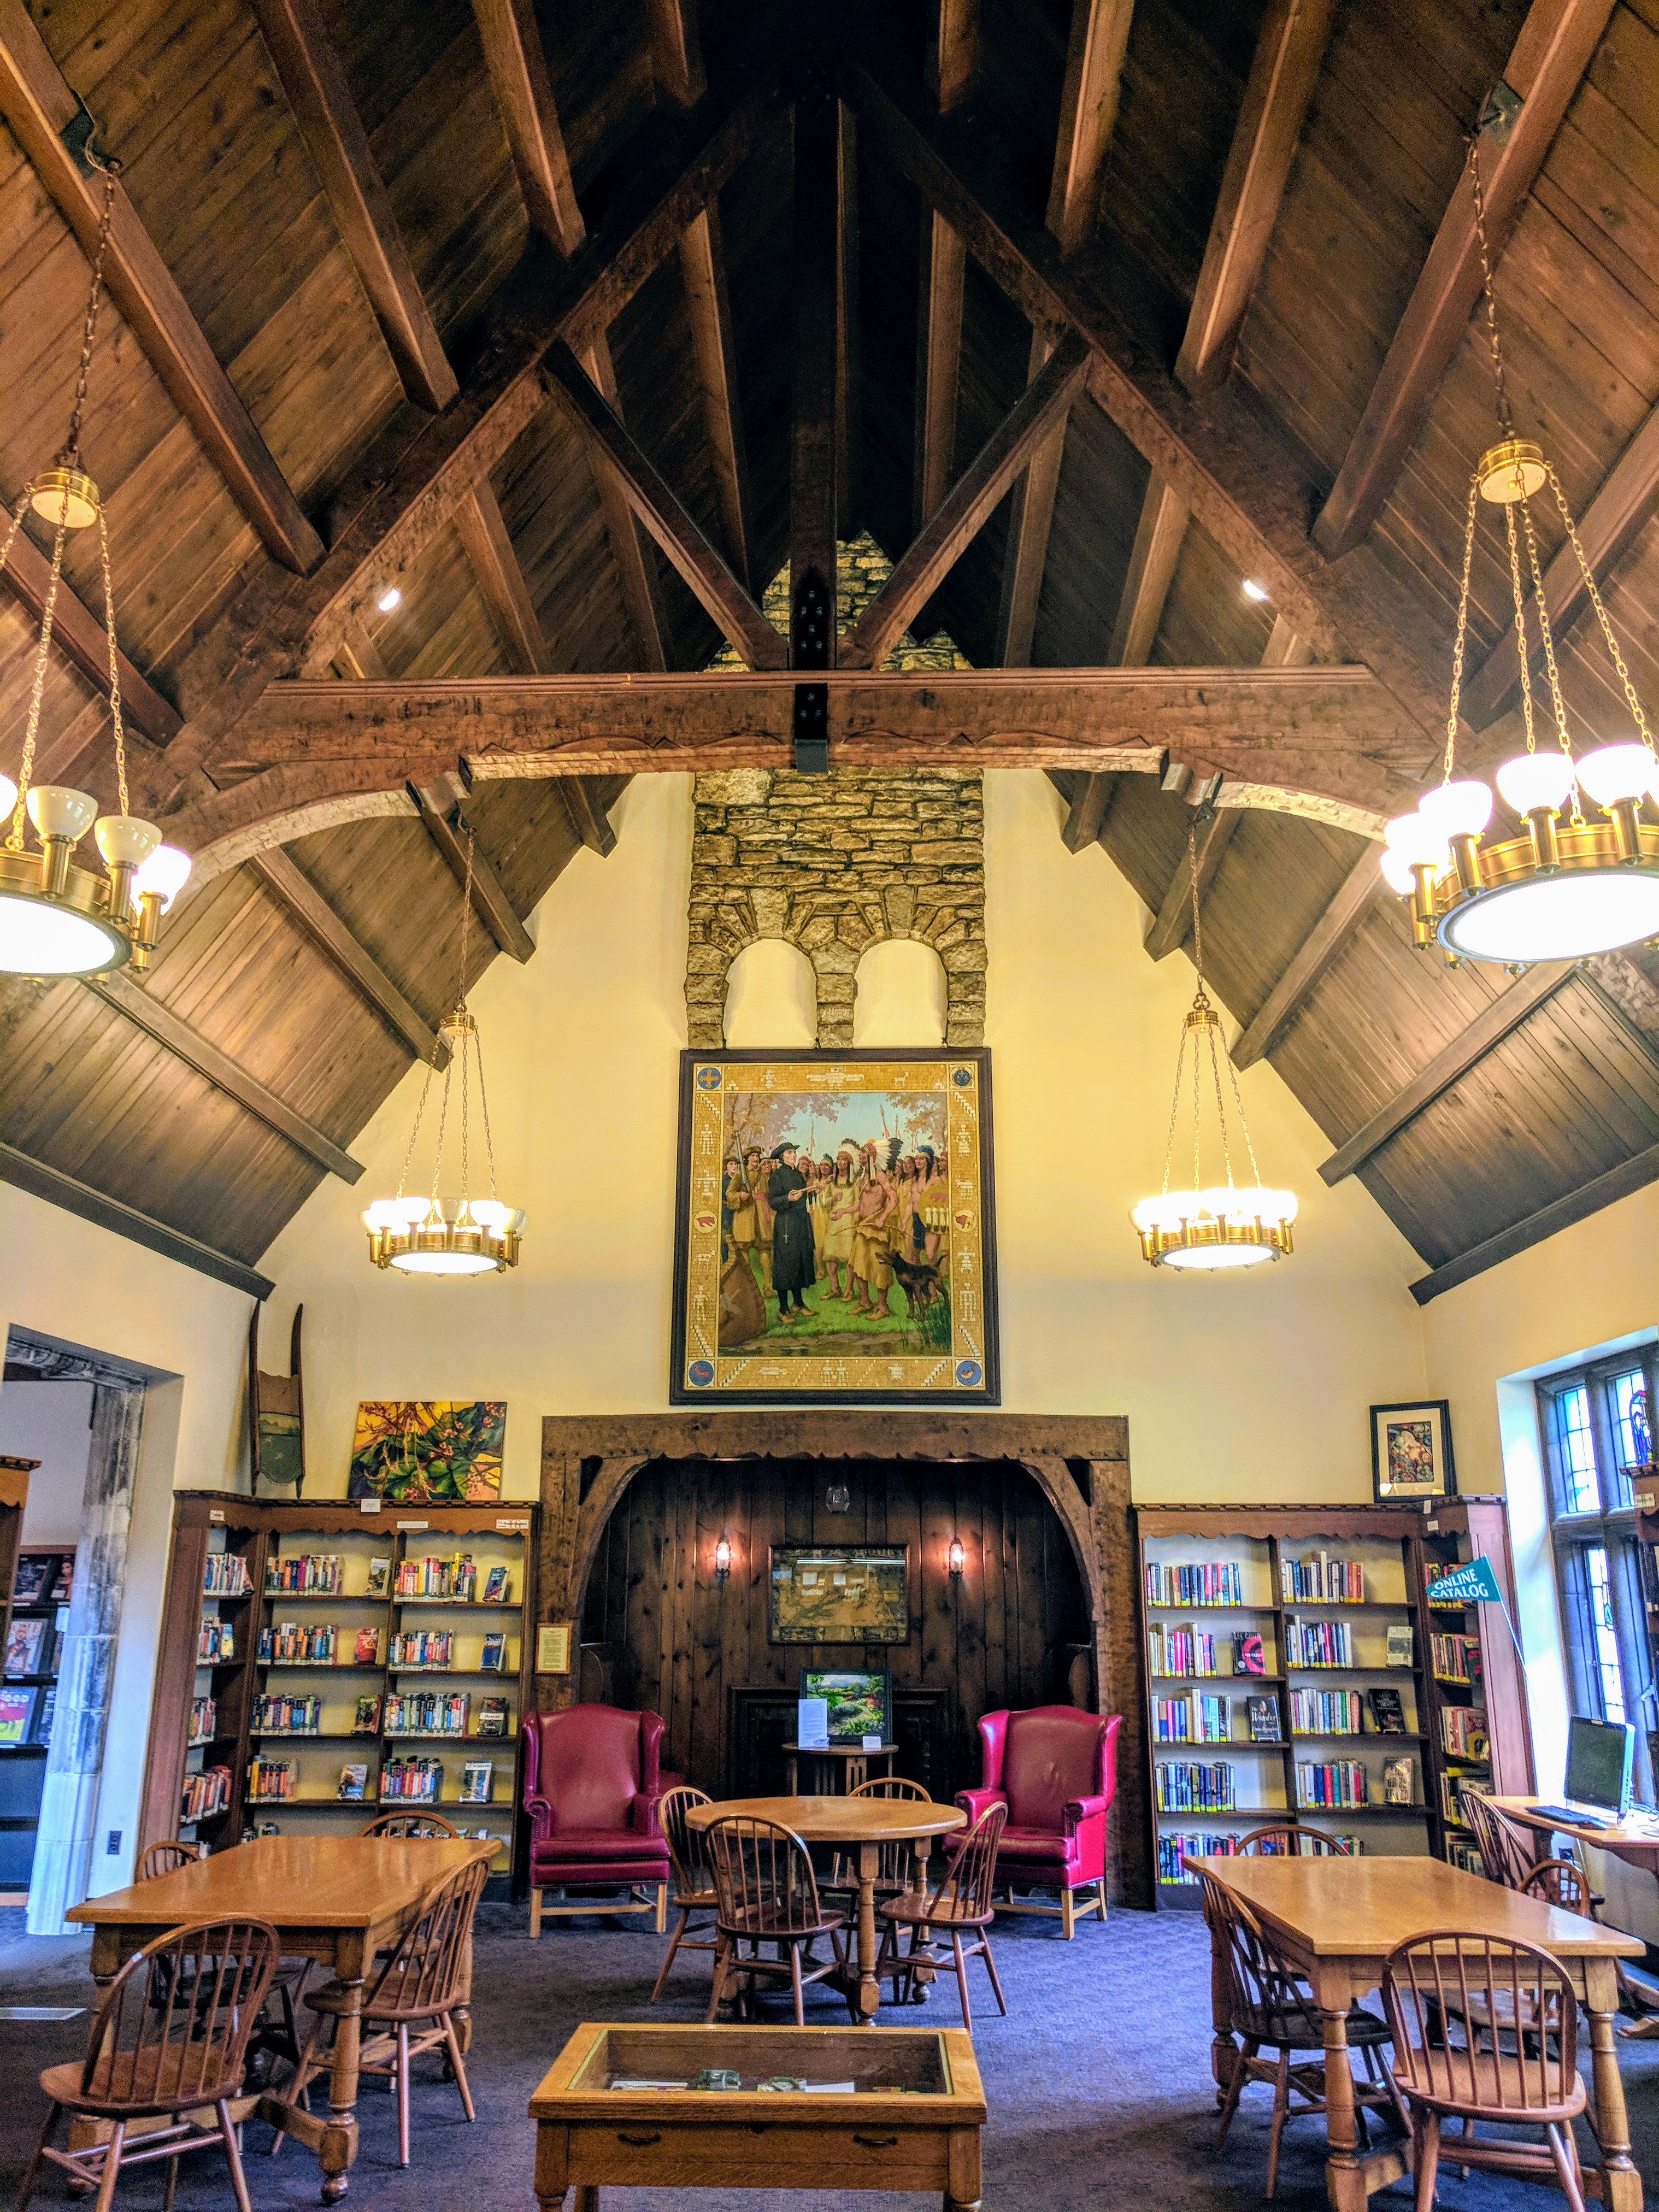 The local library in Riverside, Illinois